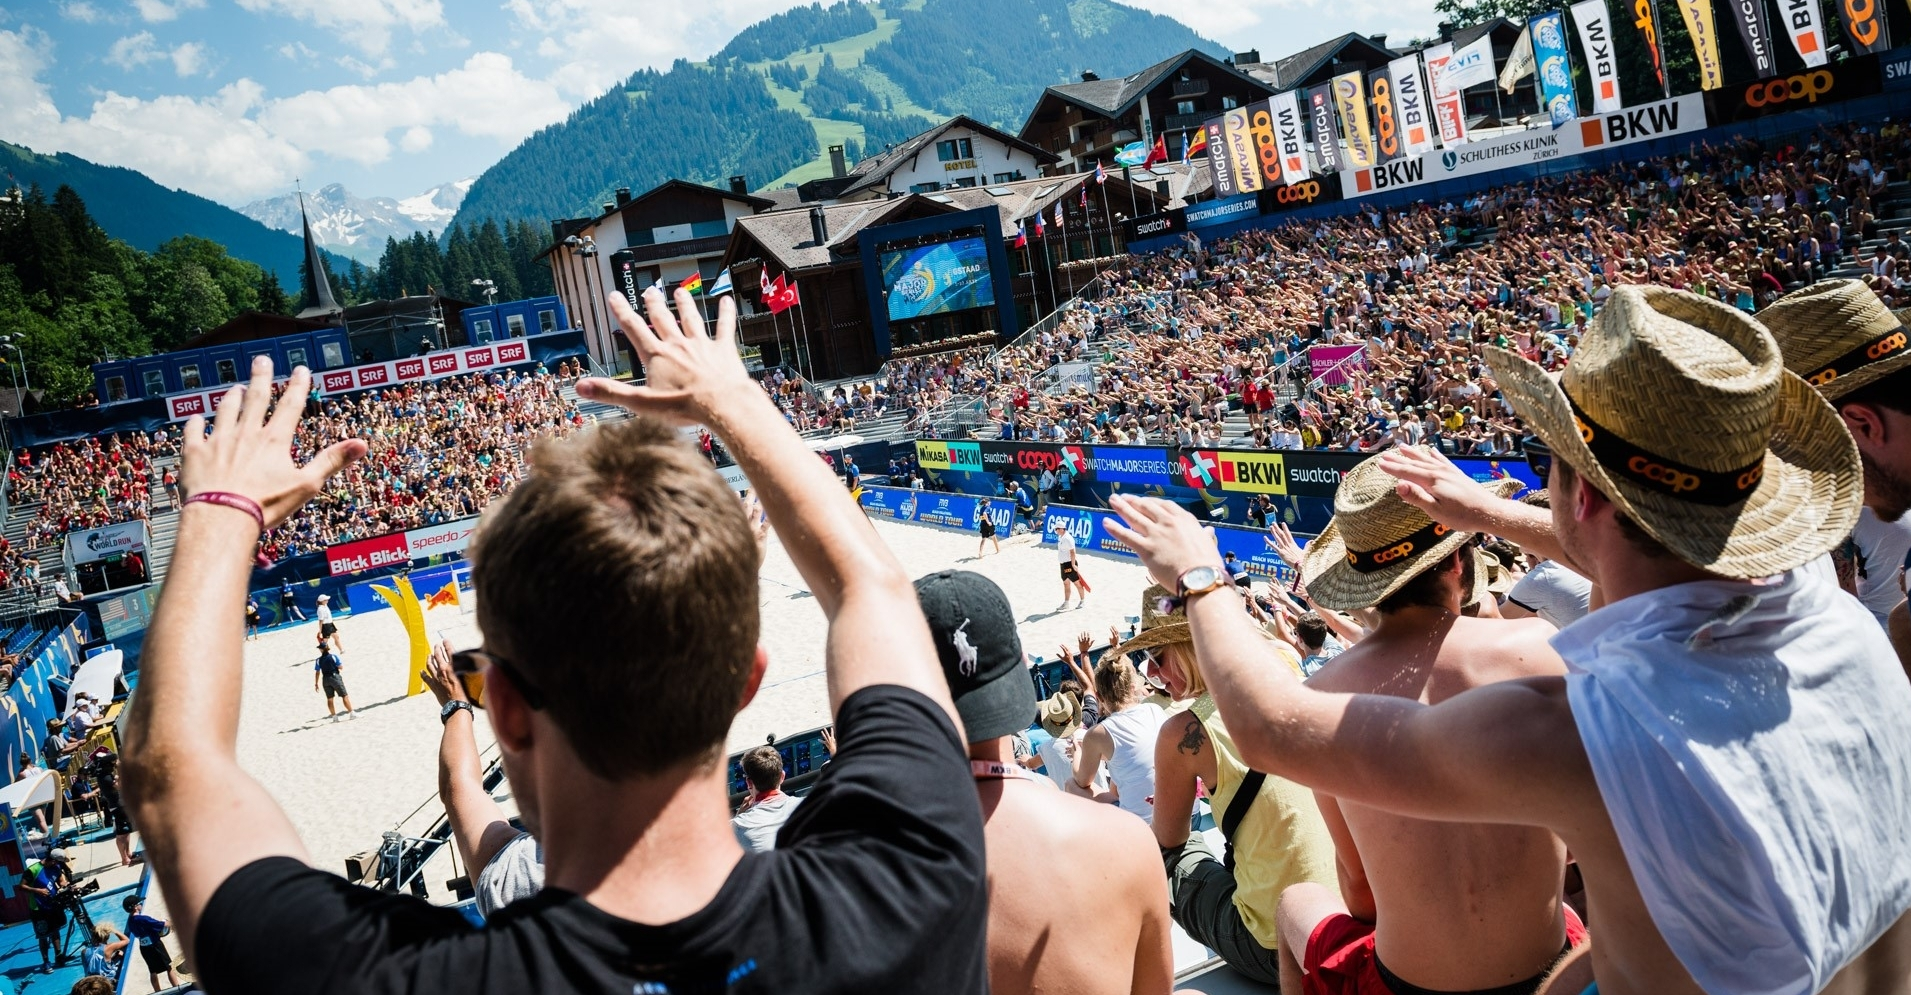 What a week it was in the Alps – see you next year Gstaad! Photocredit: Armin Walcher.